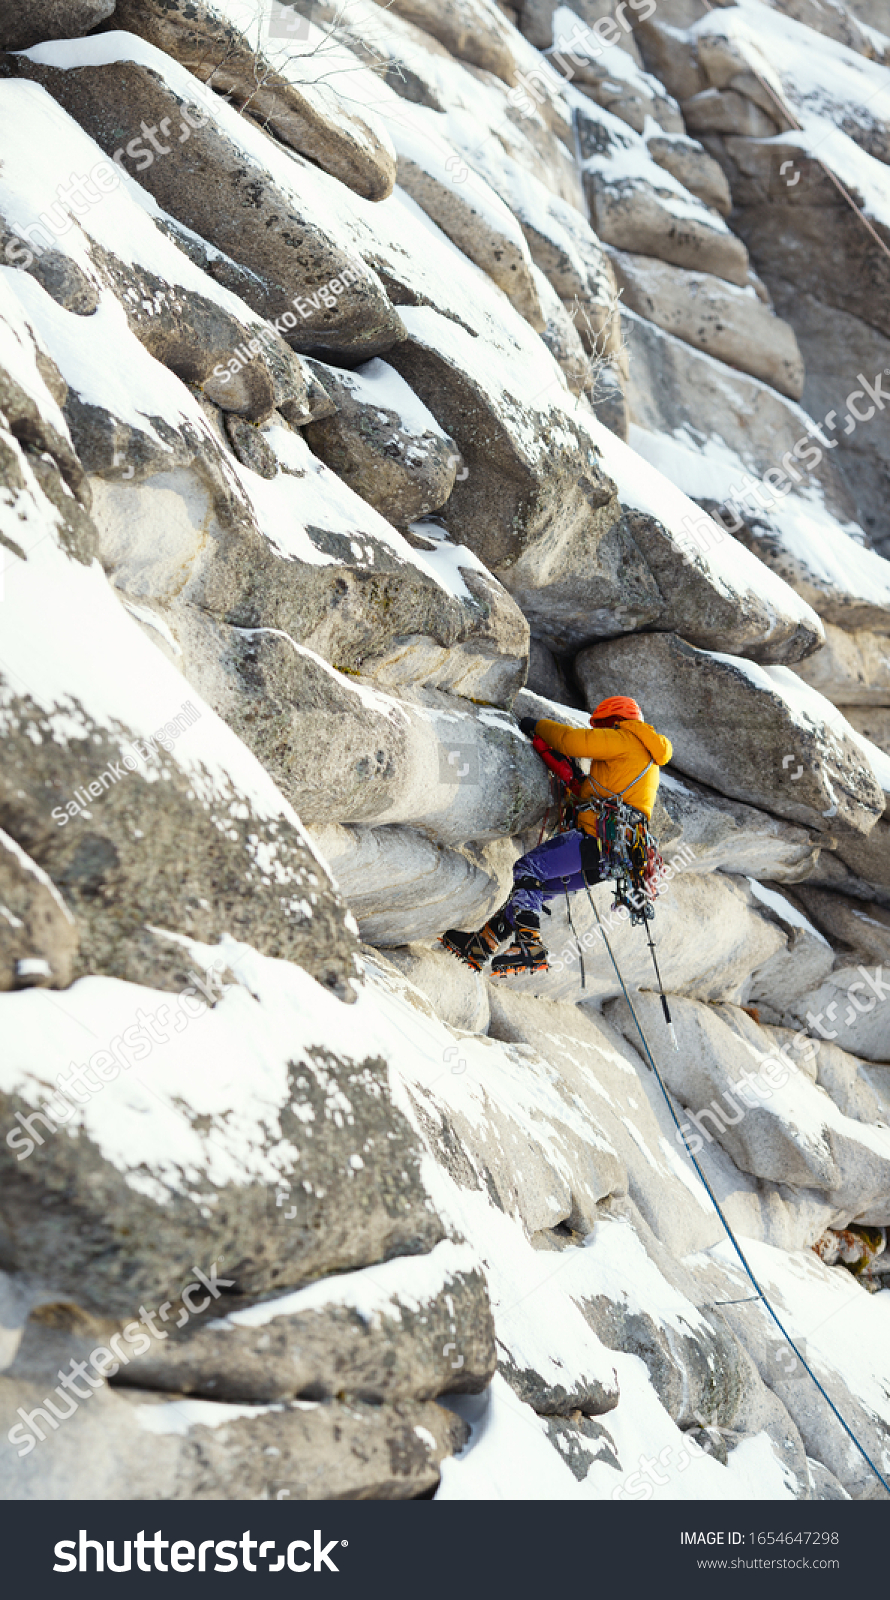 Mountaineer figure in bright outfit climbing up during the winter ascent in the mountains, against the background of overhanging rocks in the foreground and background are out of focus, panorama. #1654647298